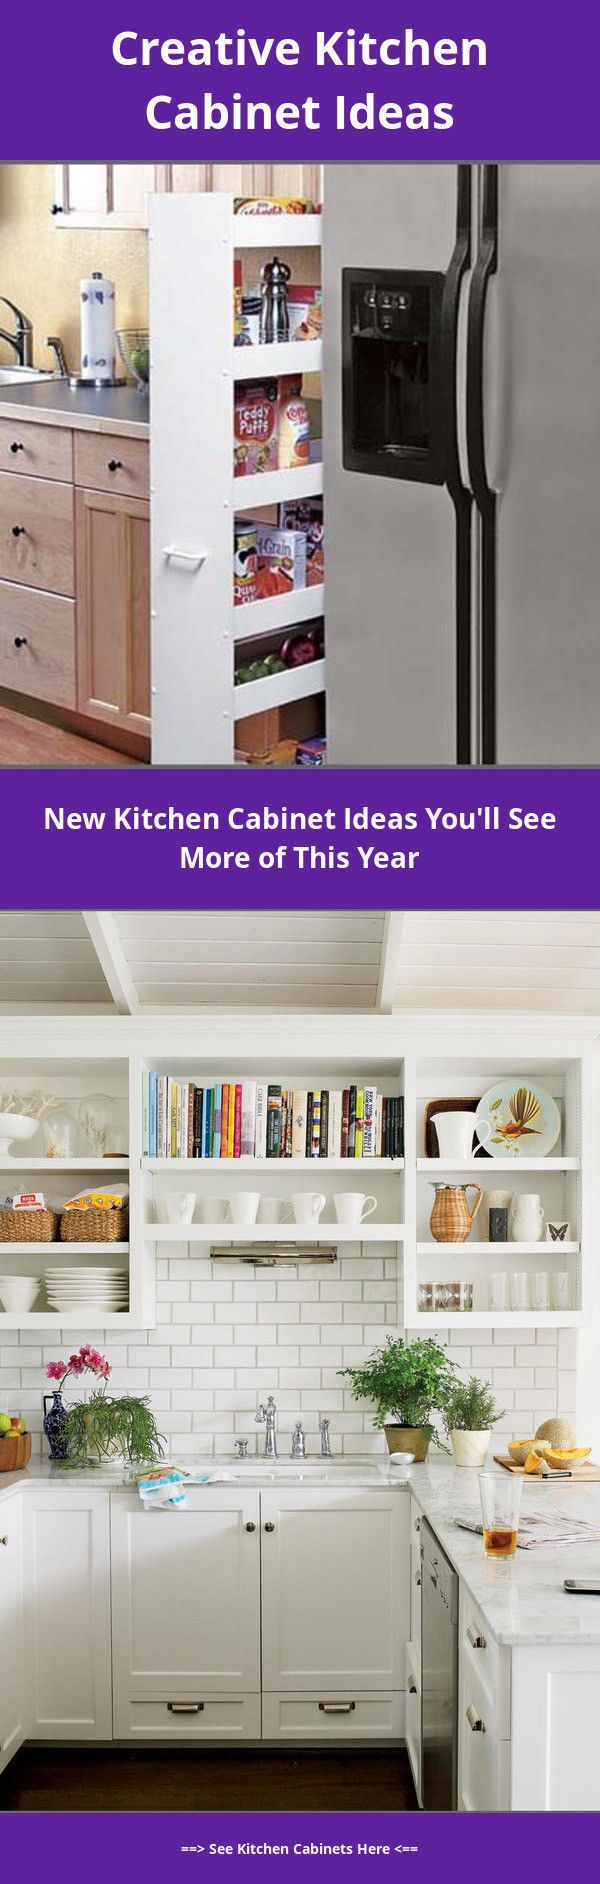 Budget-friendly diy kitchen cabinet ideas and diy blind corner kitchen cabinet organizers. new #cabinetorganizers Budget-friendly diy kitchen cabinet ideas and diy blind corner kitchen cabinet organizers. new #cabinetorganizers